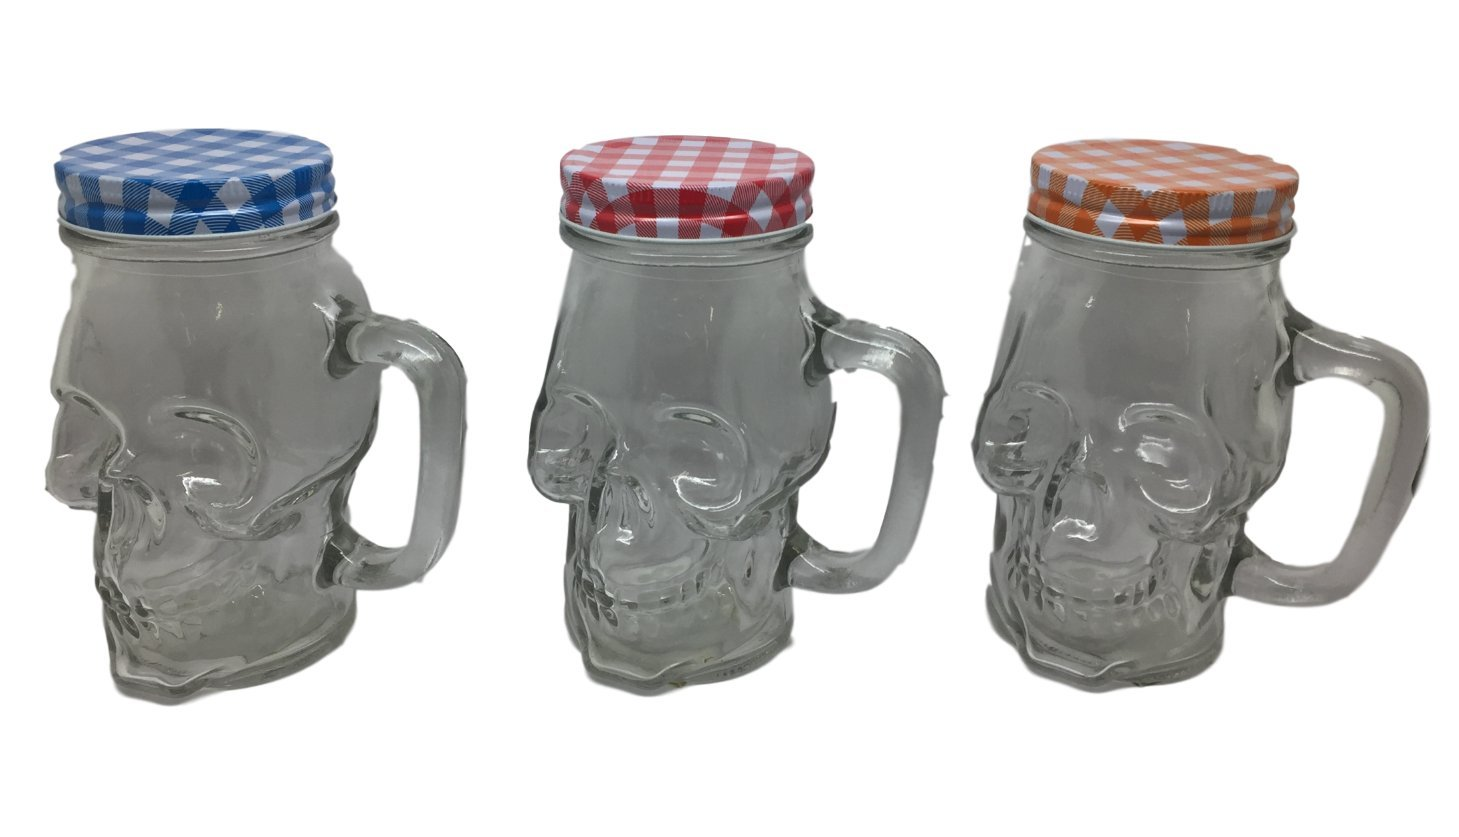 Ducomi teschiobar–Set of 4Glasses Skull Shape Transparent Glass with Handle and Coloured Caps–400ml